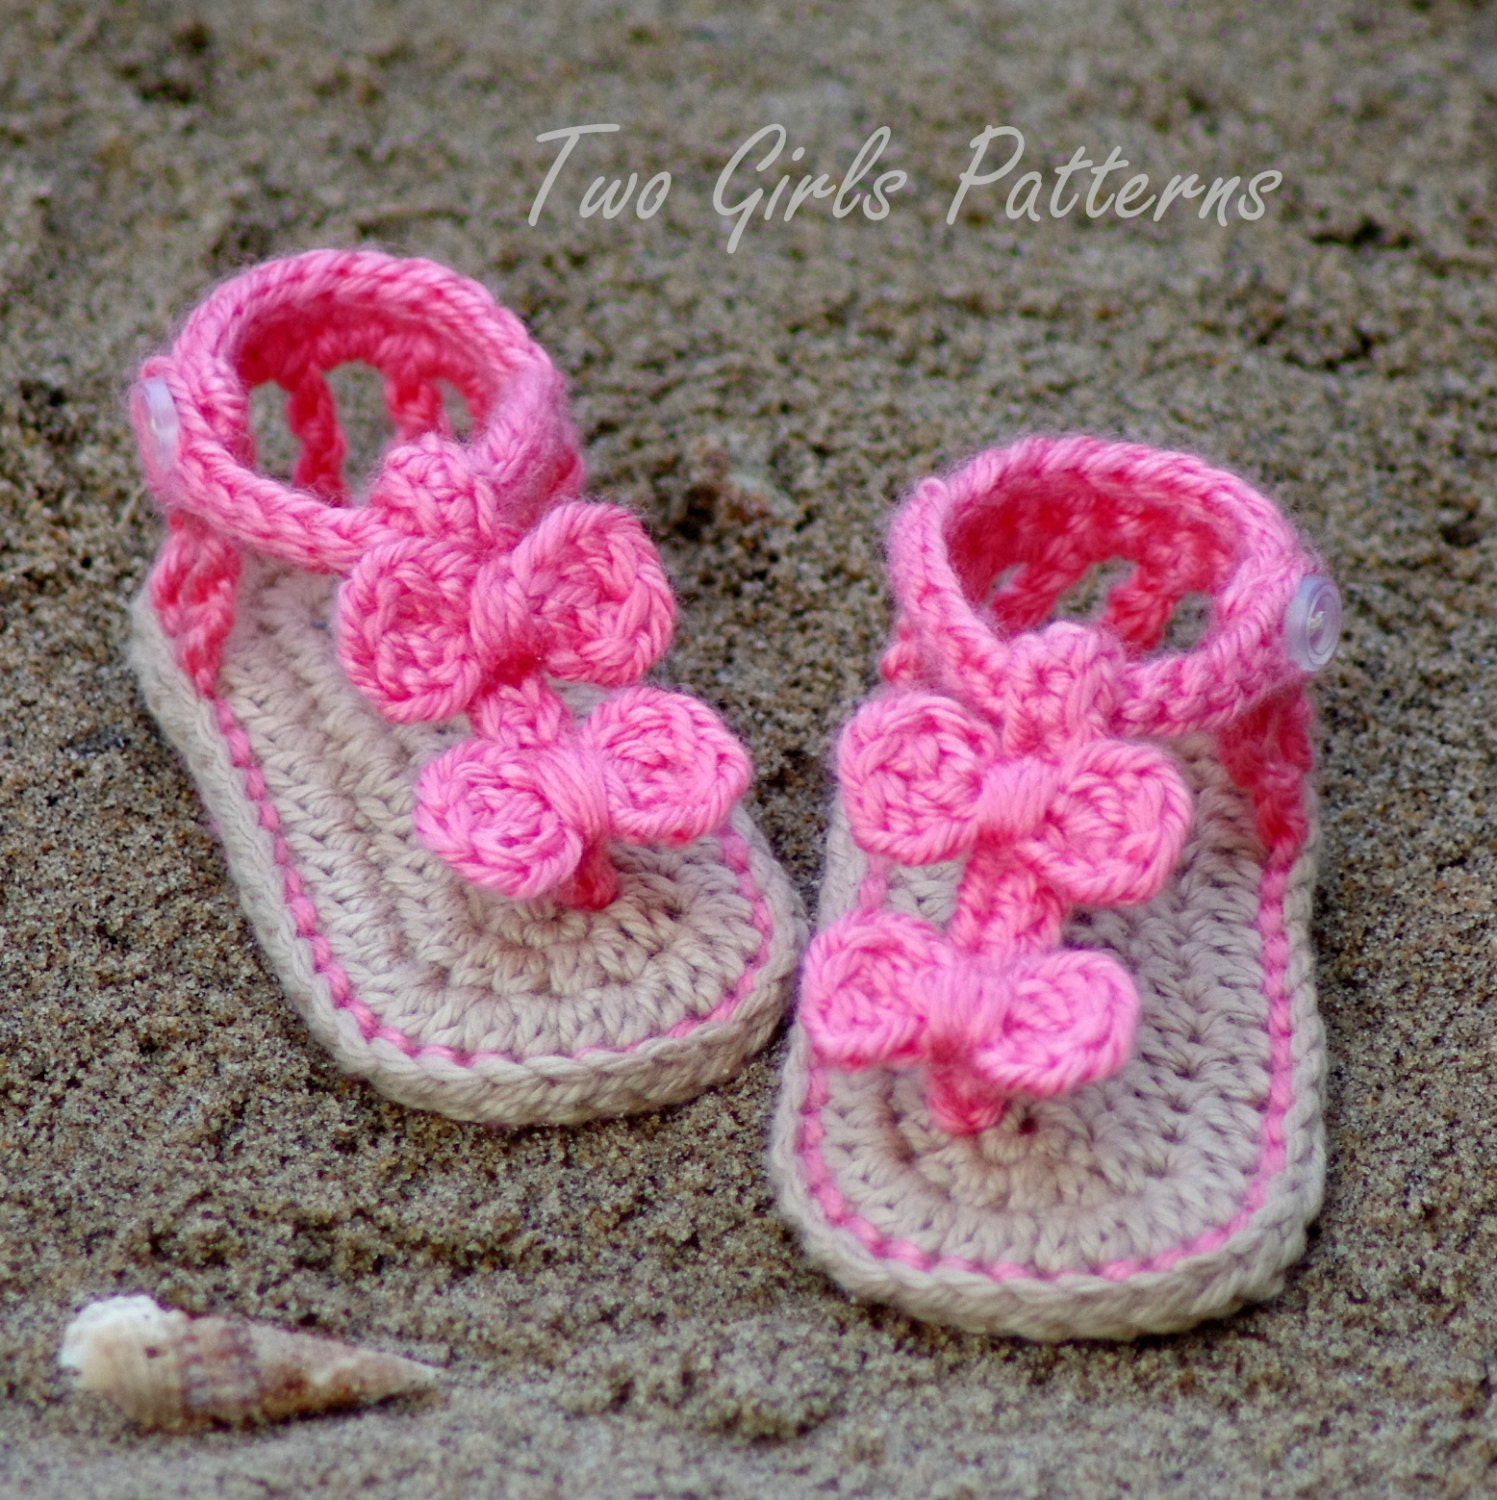 Crochet Pattern For Baby Barefoot Sandals : CROCHET PATTERN 211 Baby Sandal 2 Versions by TwoGirlsPatterns